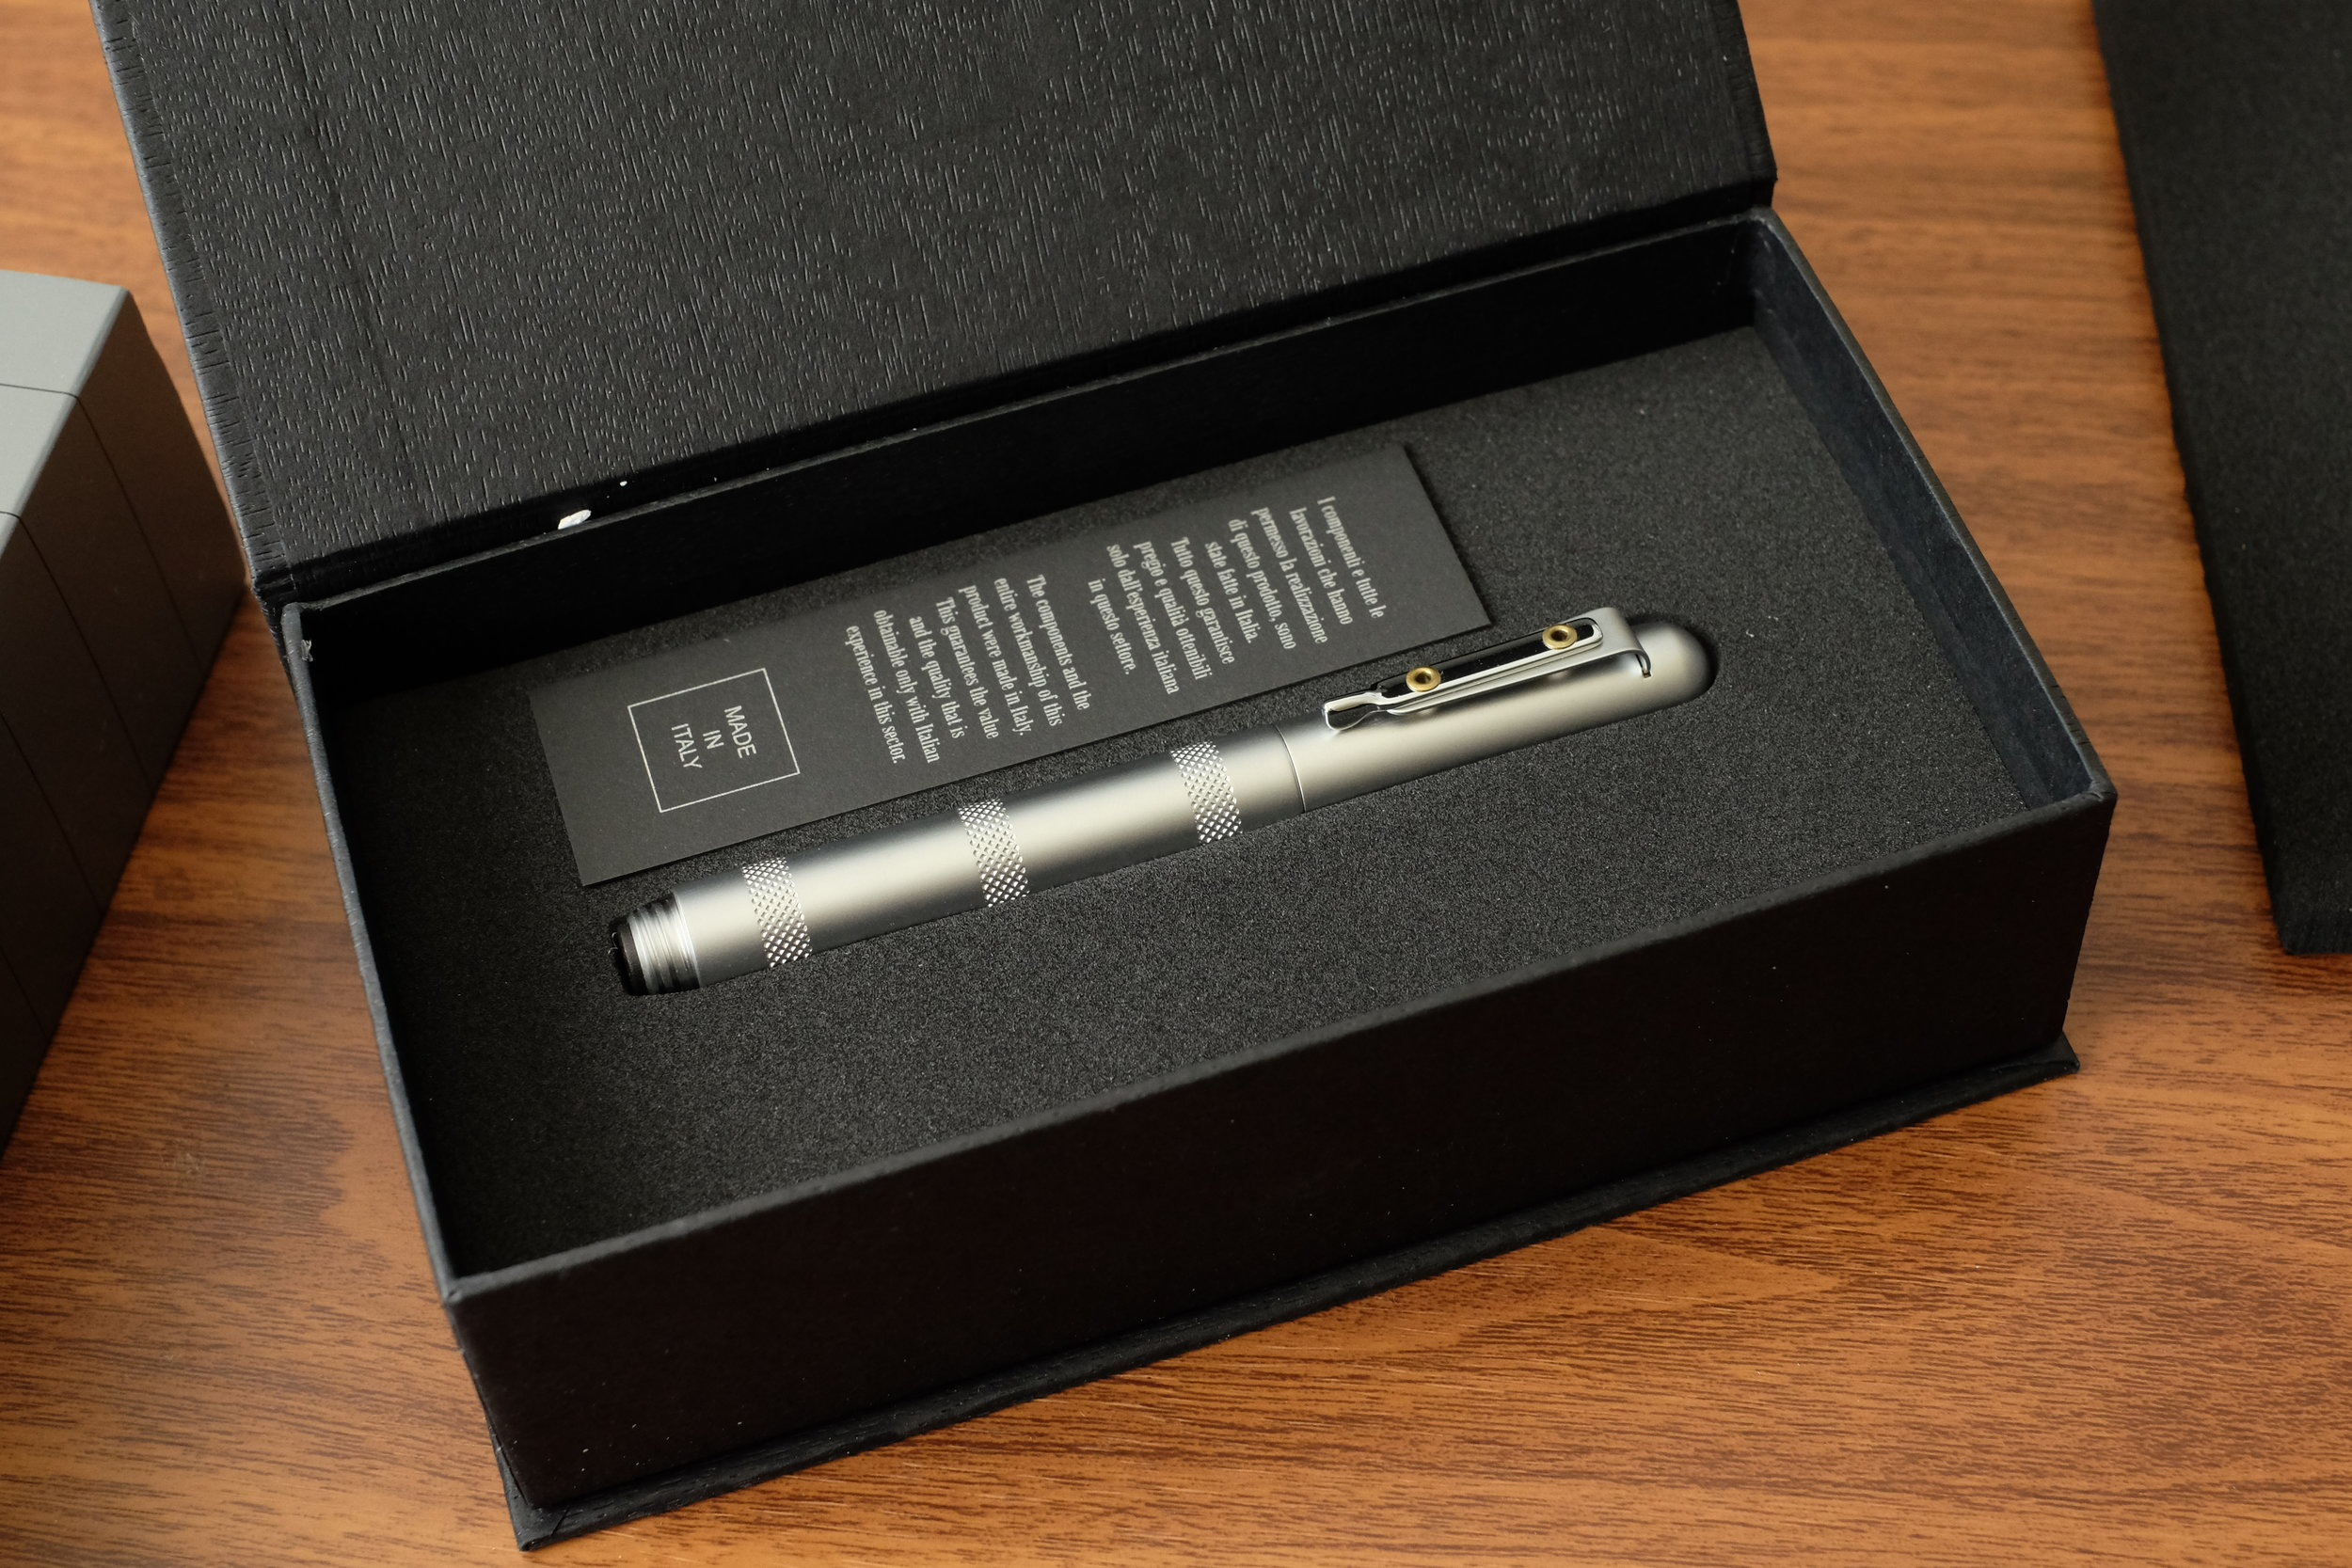 Mazzuoli-Officina-Fountain-Pen-Micrometer-Chrome